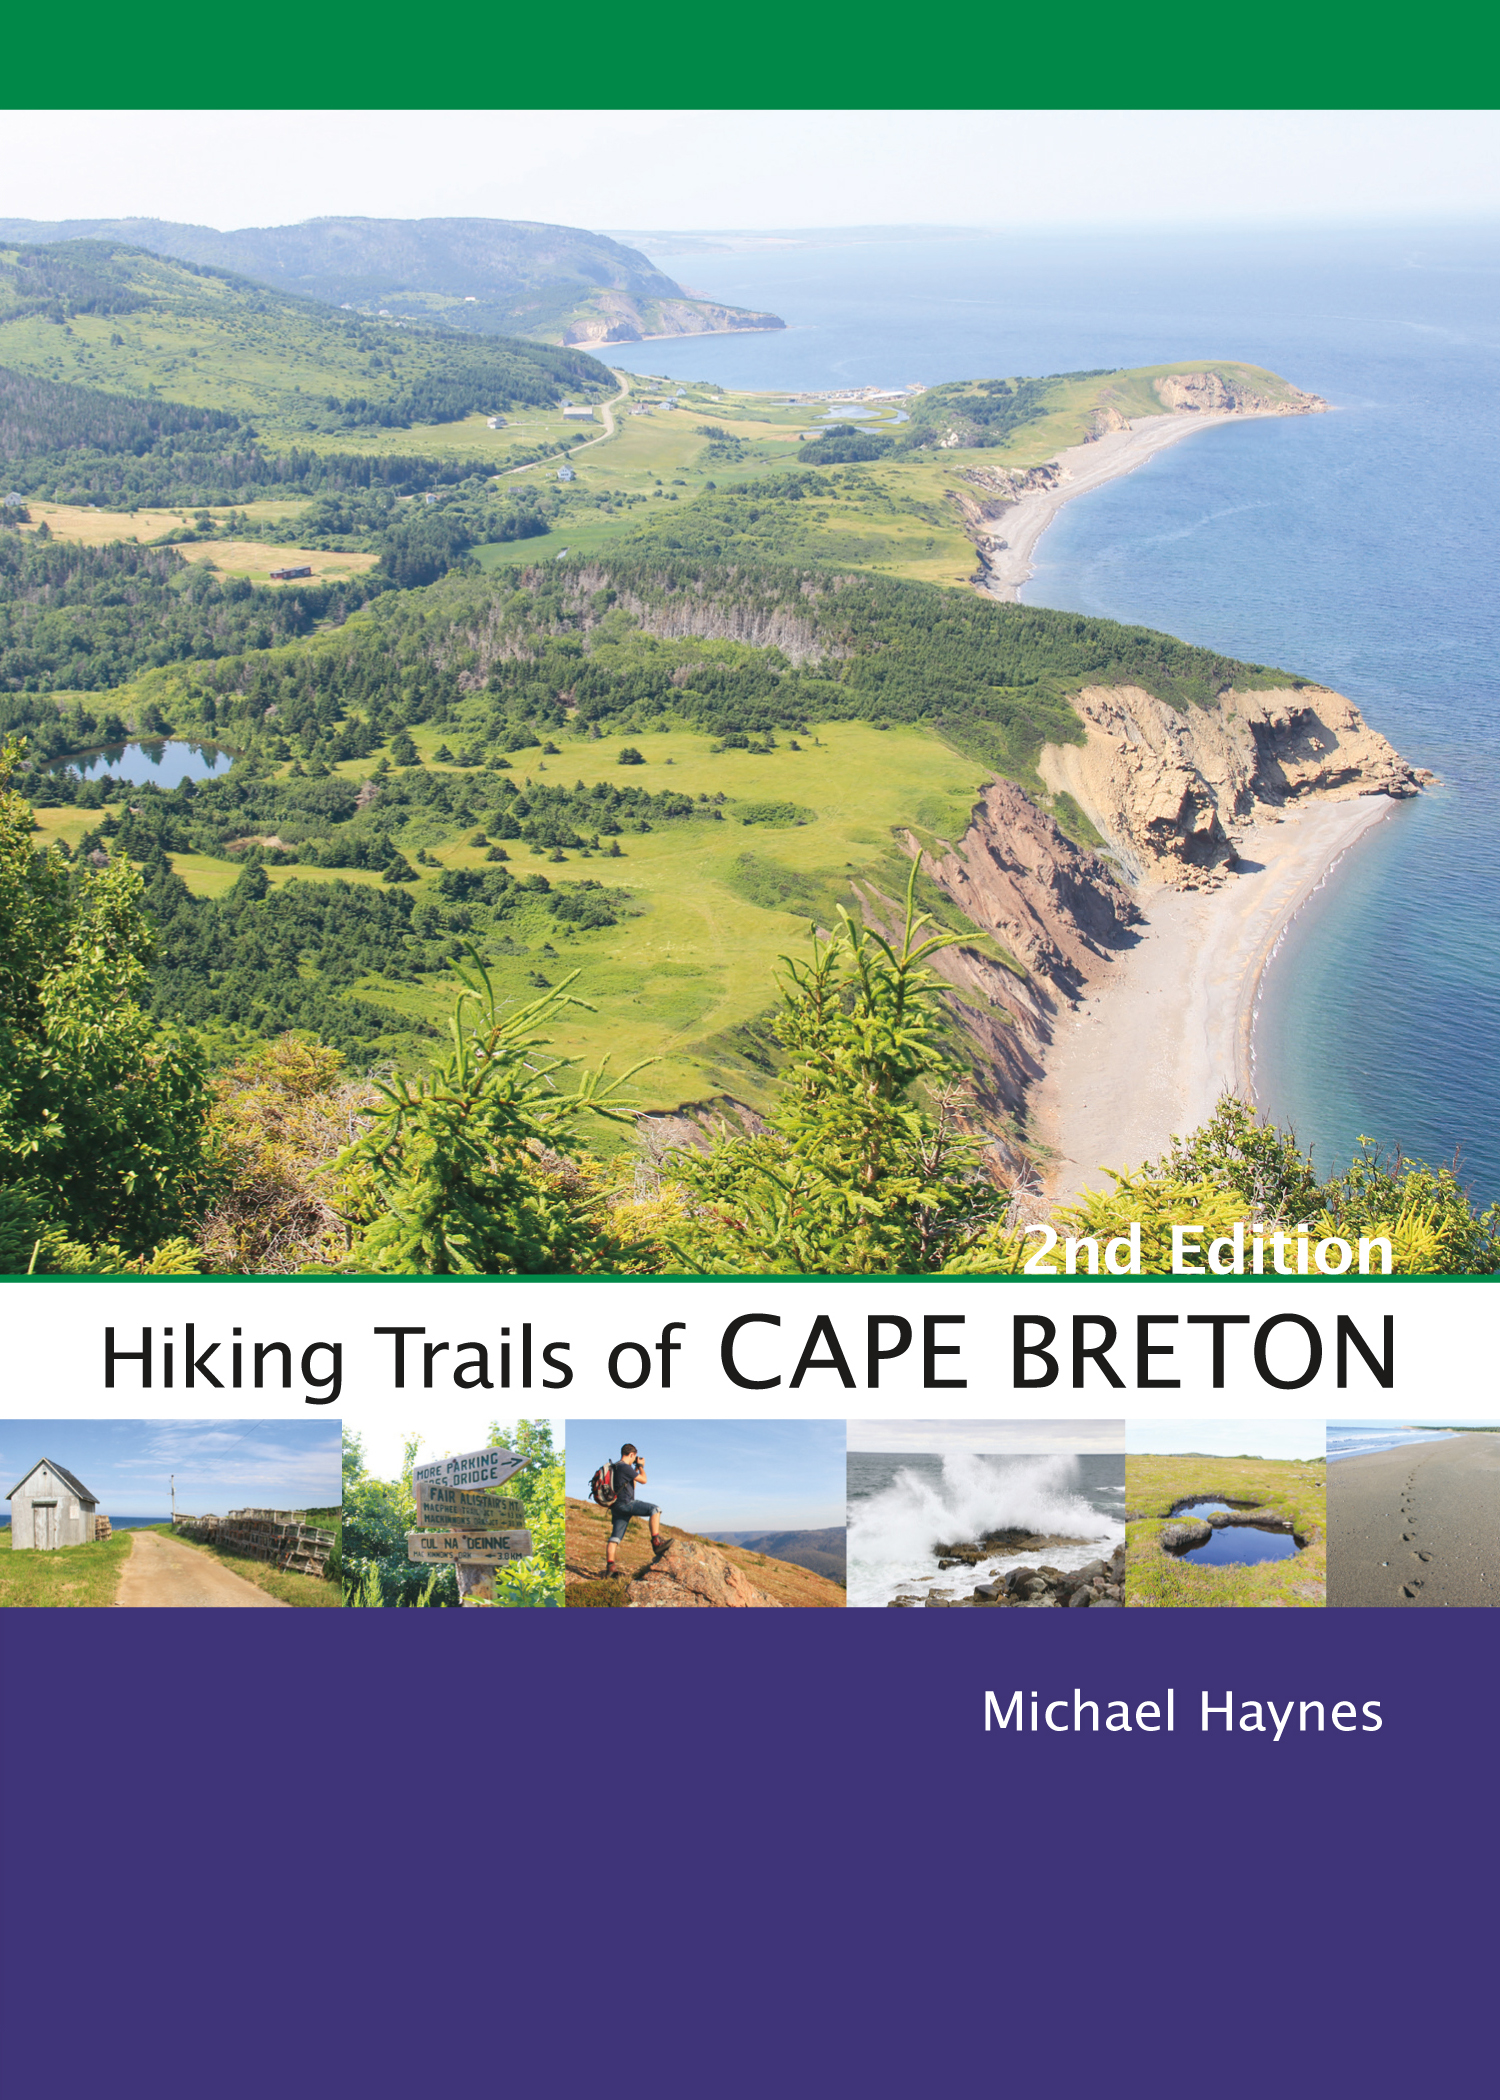 Hiking Trails of Cape Breton, 2nd Edition | Dictionary & Encyclopedia